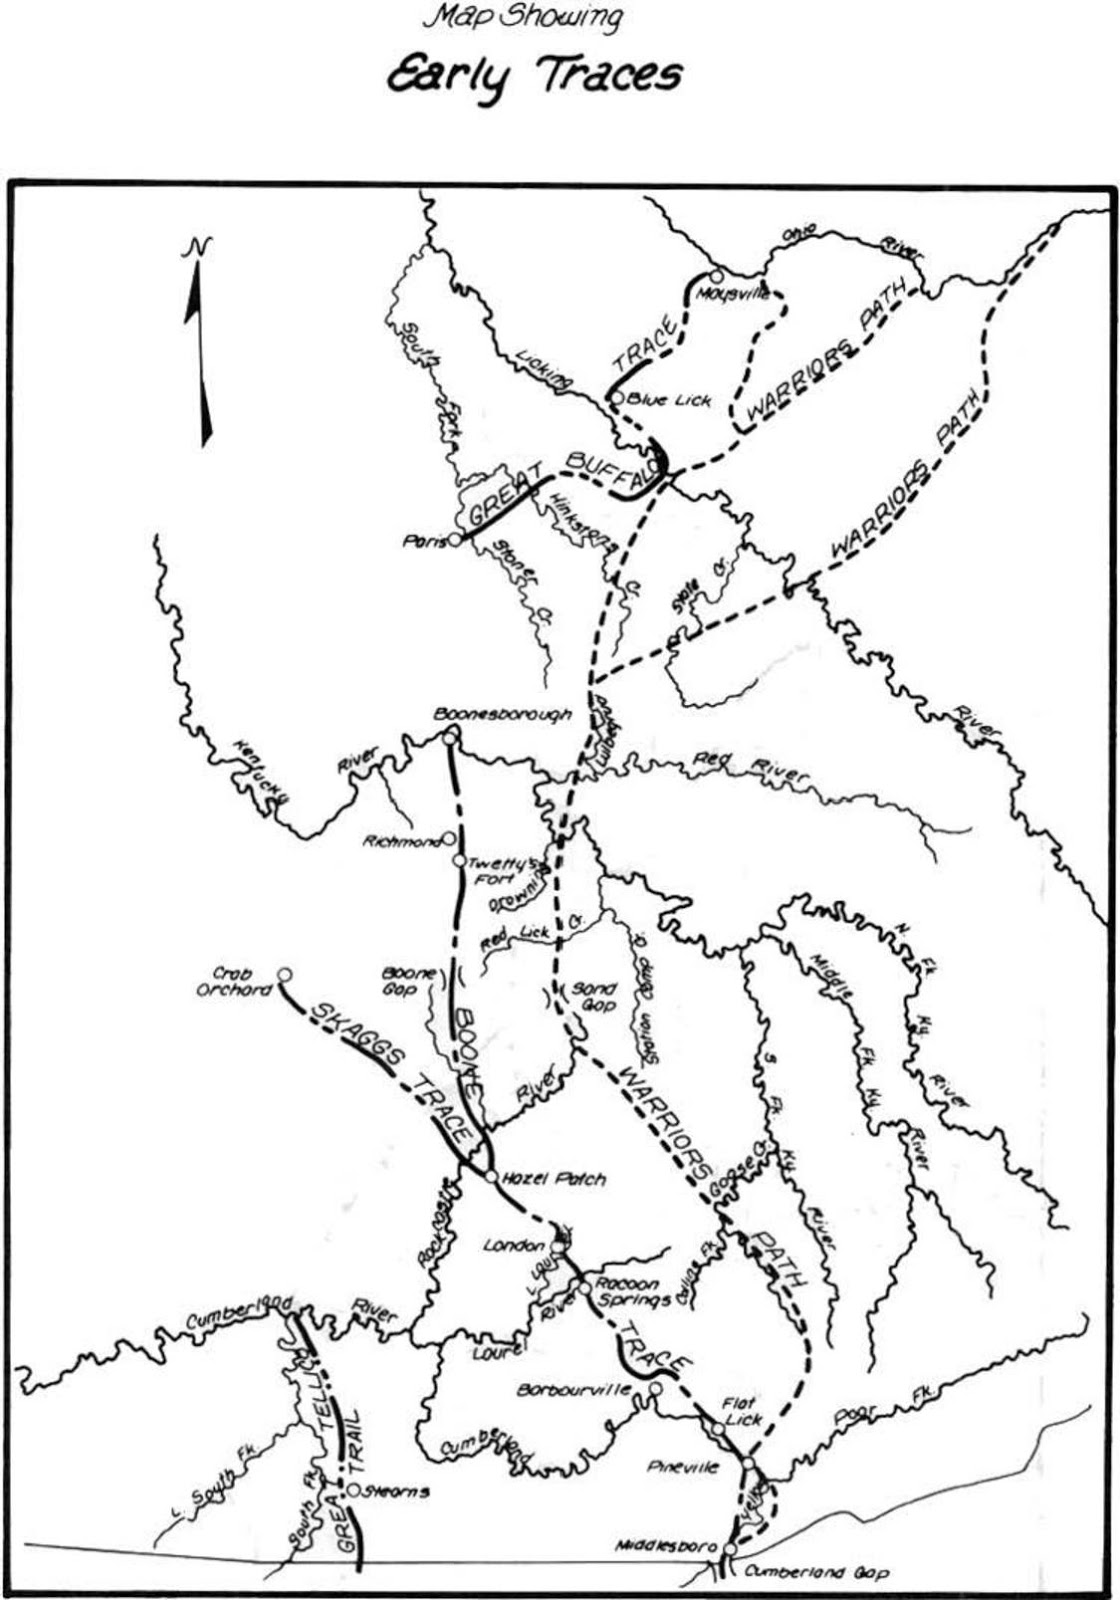 an early map of settler and native paths